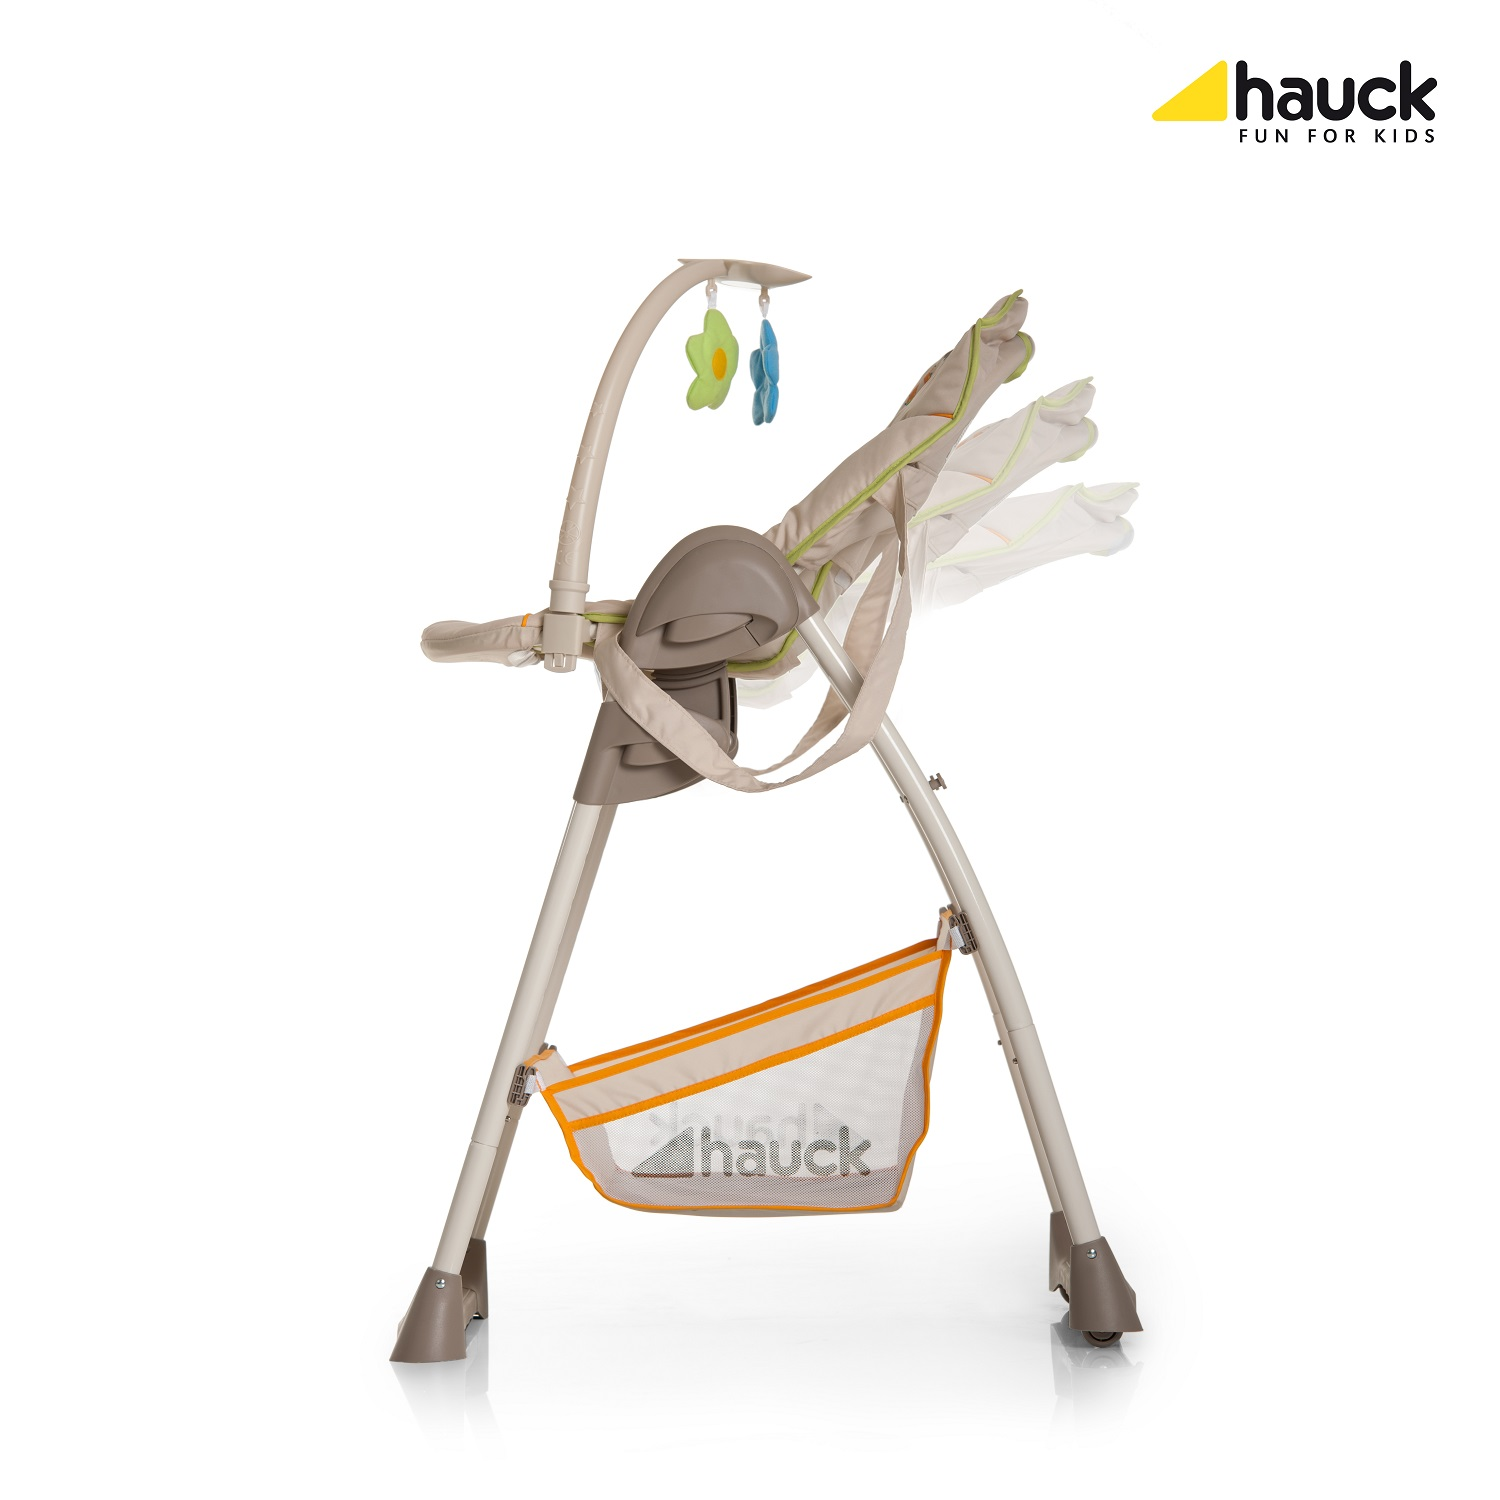 hauck high chair upholstered toddler highchair sitn relax 2017 bear buy at kidsroom